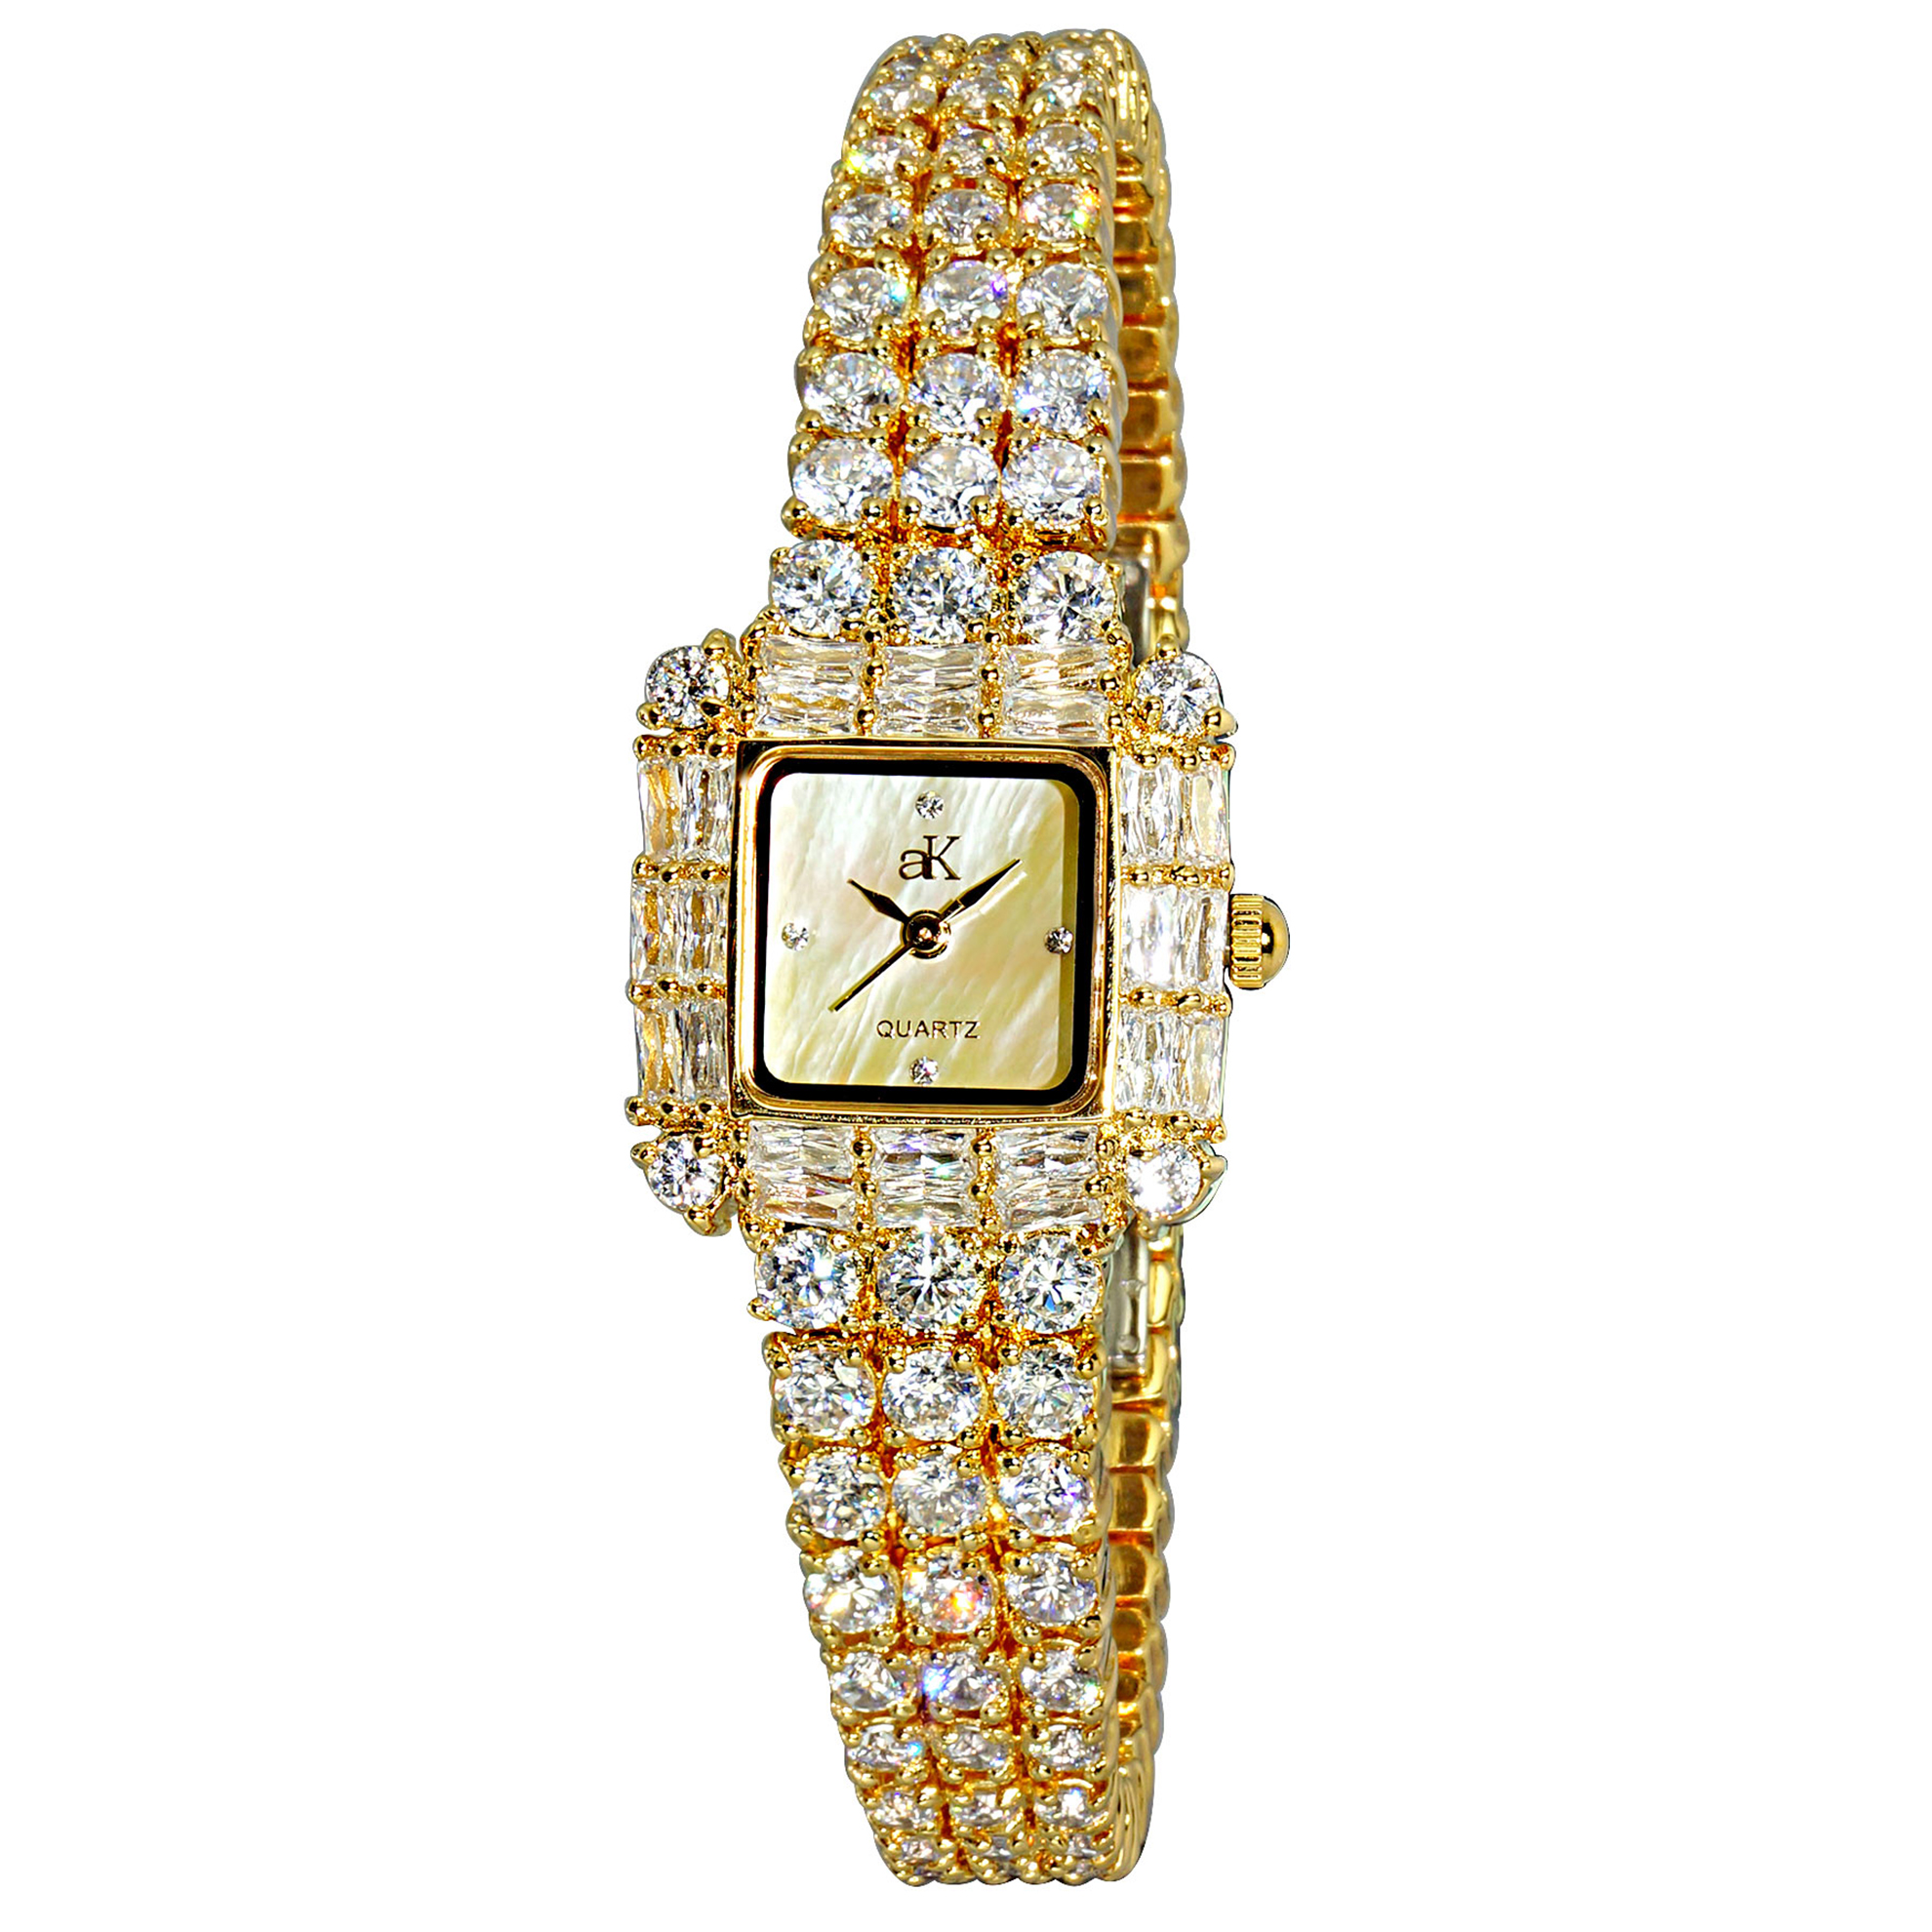 Adee Kaye AK27-LG Adee Kaye Ladies Royal Collection Gold MOP Dial